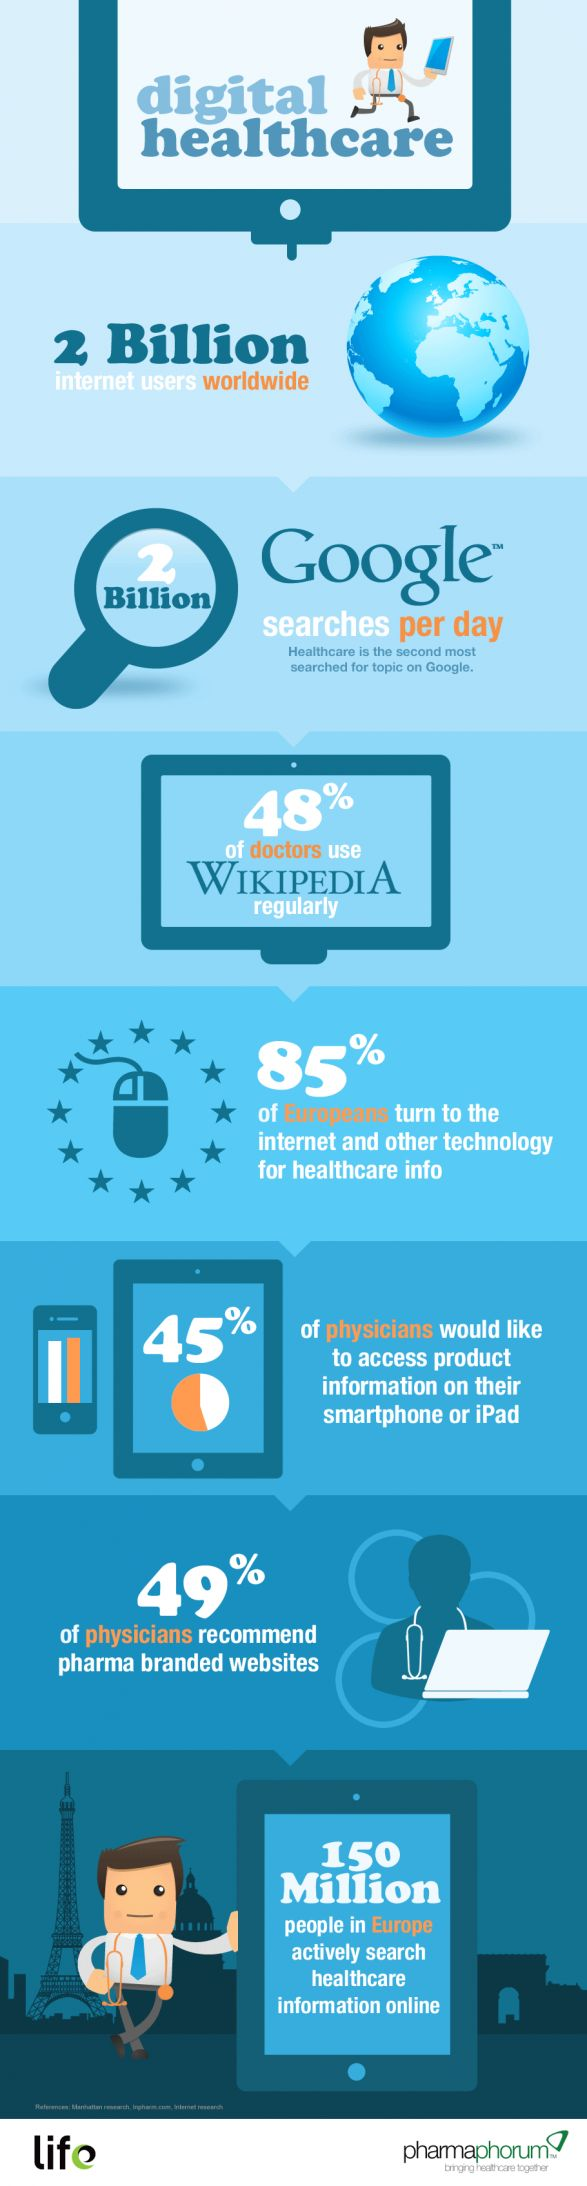 The search for health information online is bigger than you may think...